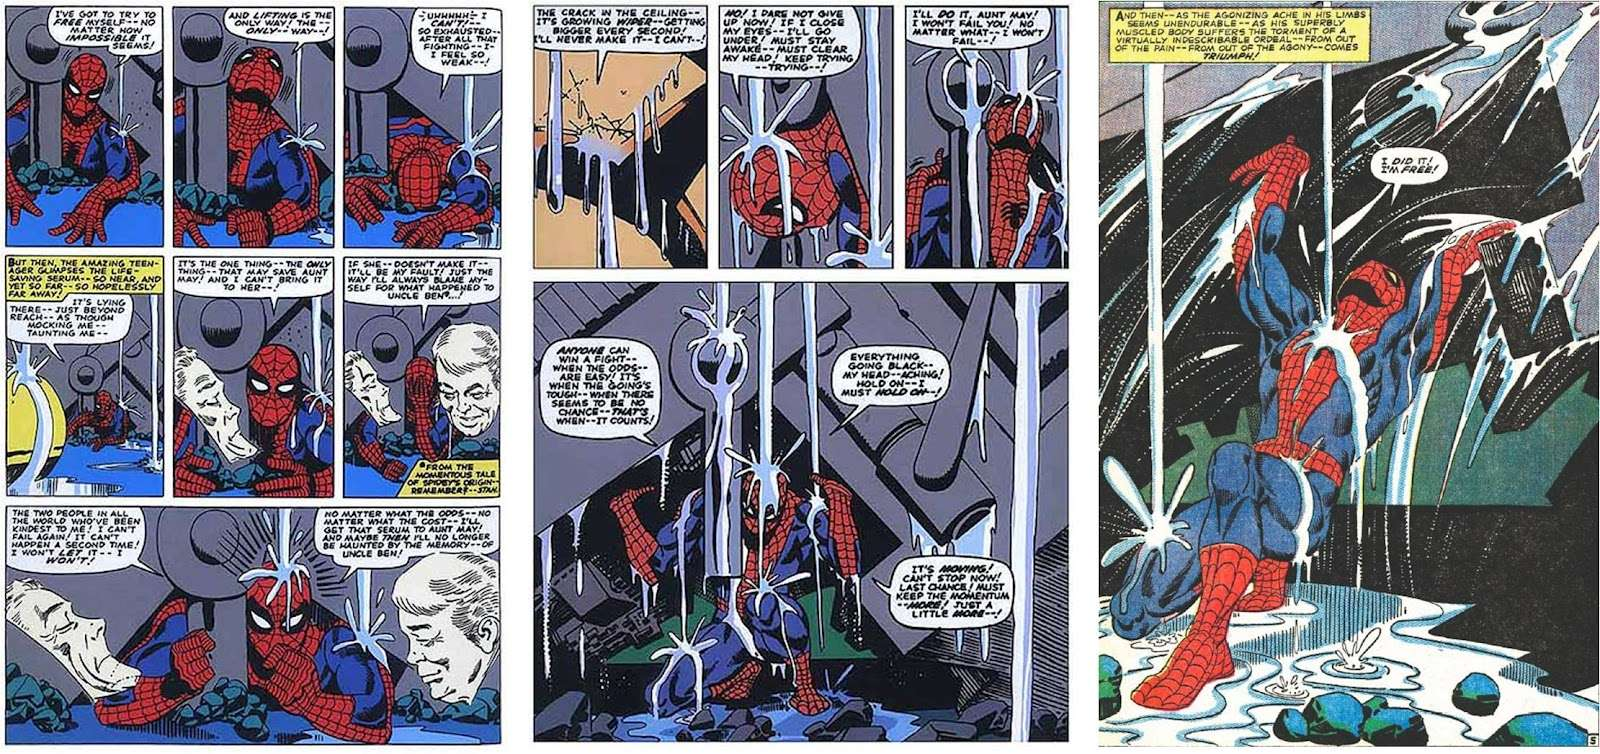 Stan Lee Vs Steve Ditko